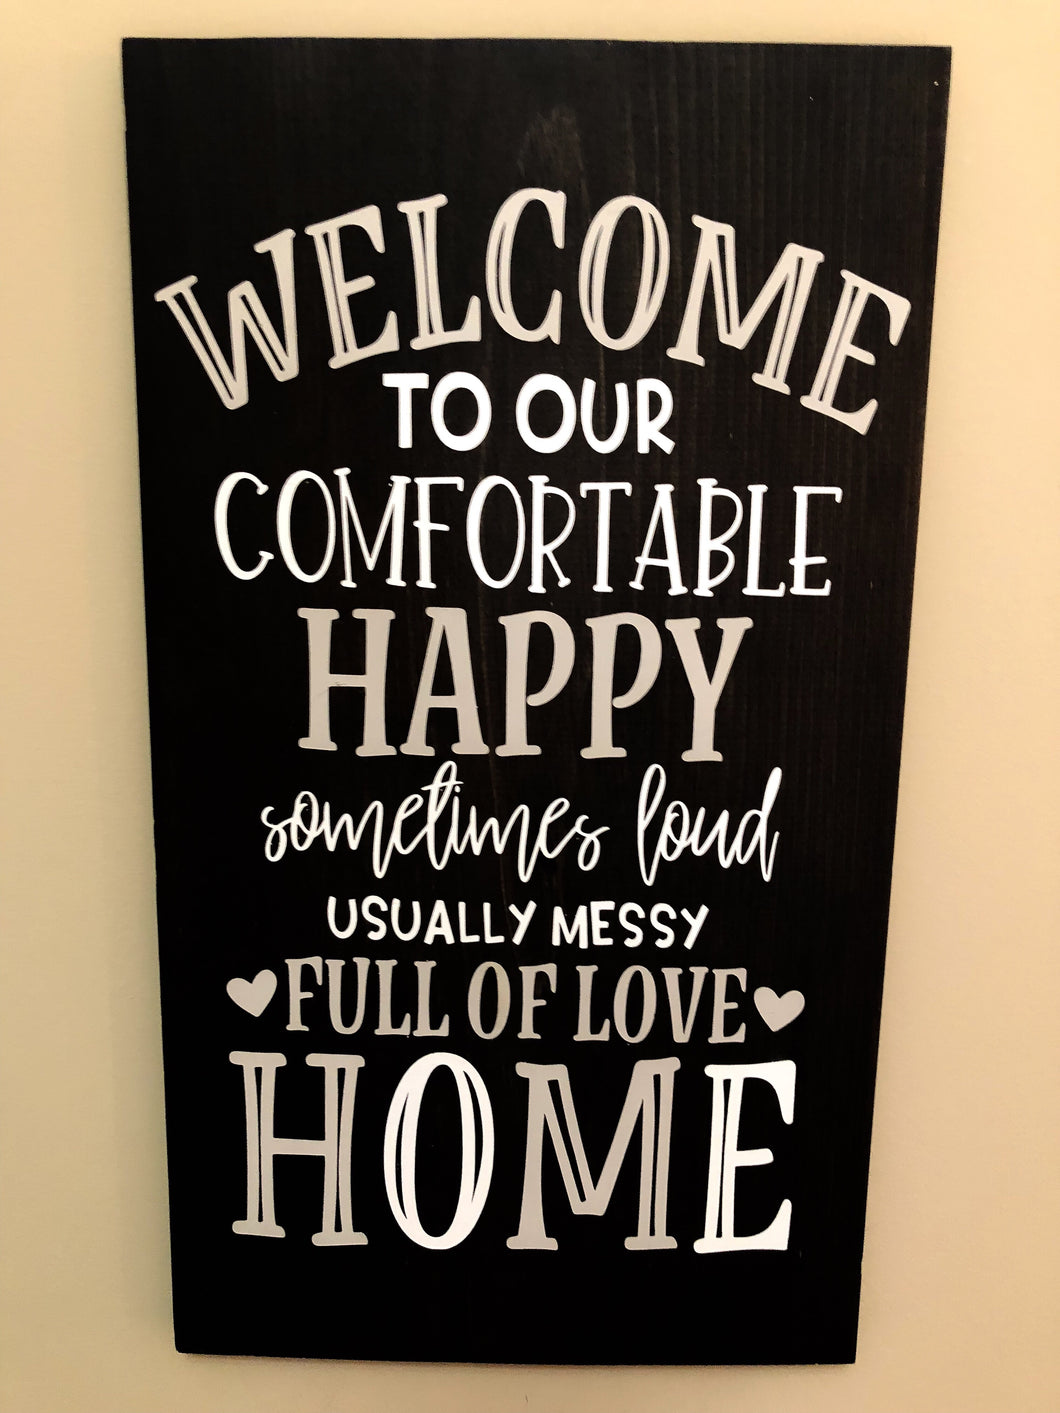 Welcome to our comfortable happy home